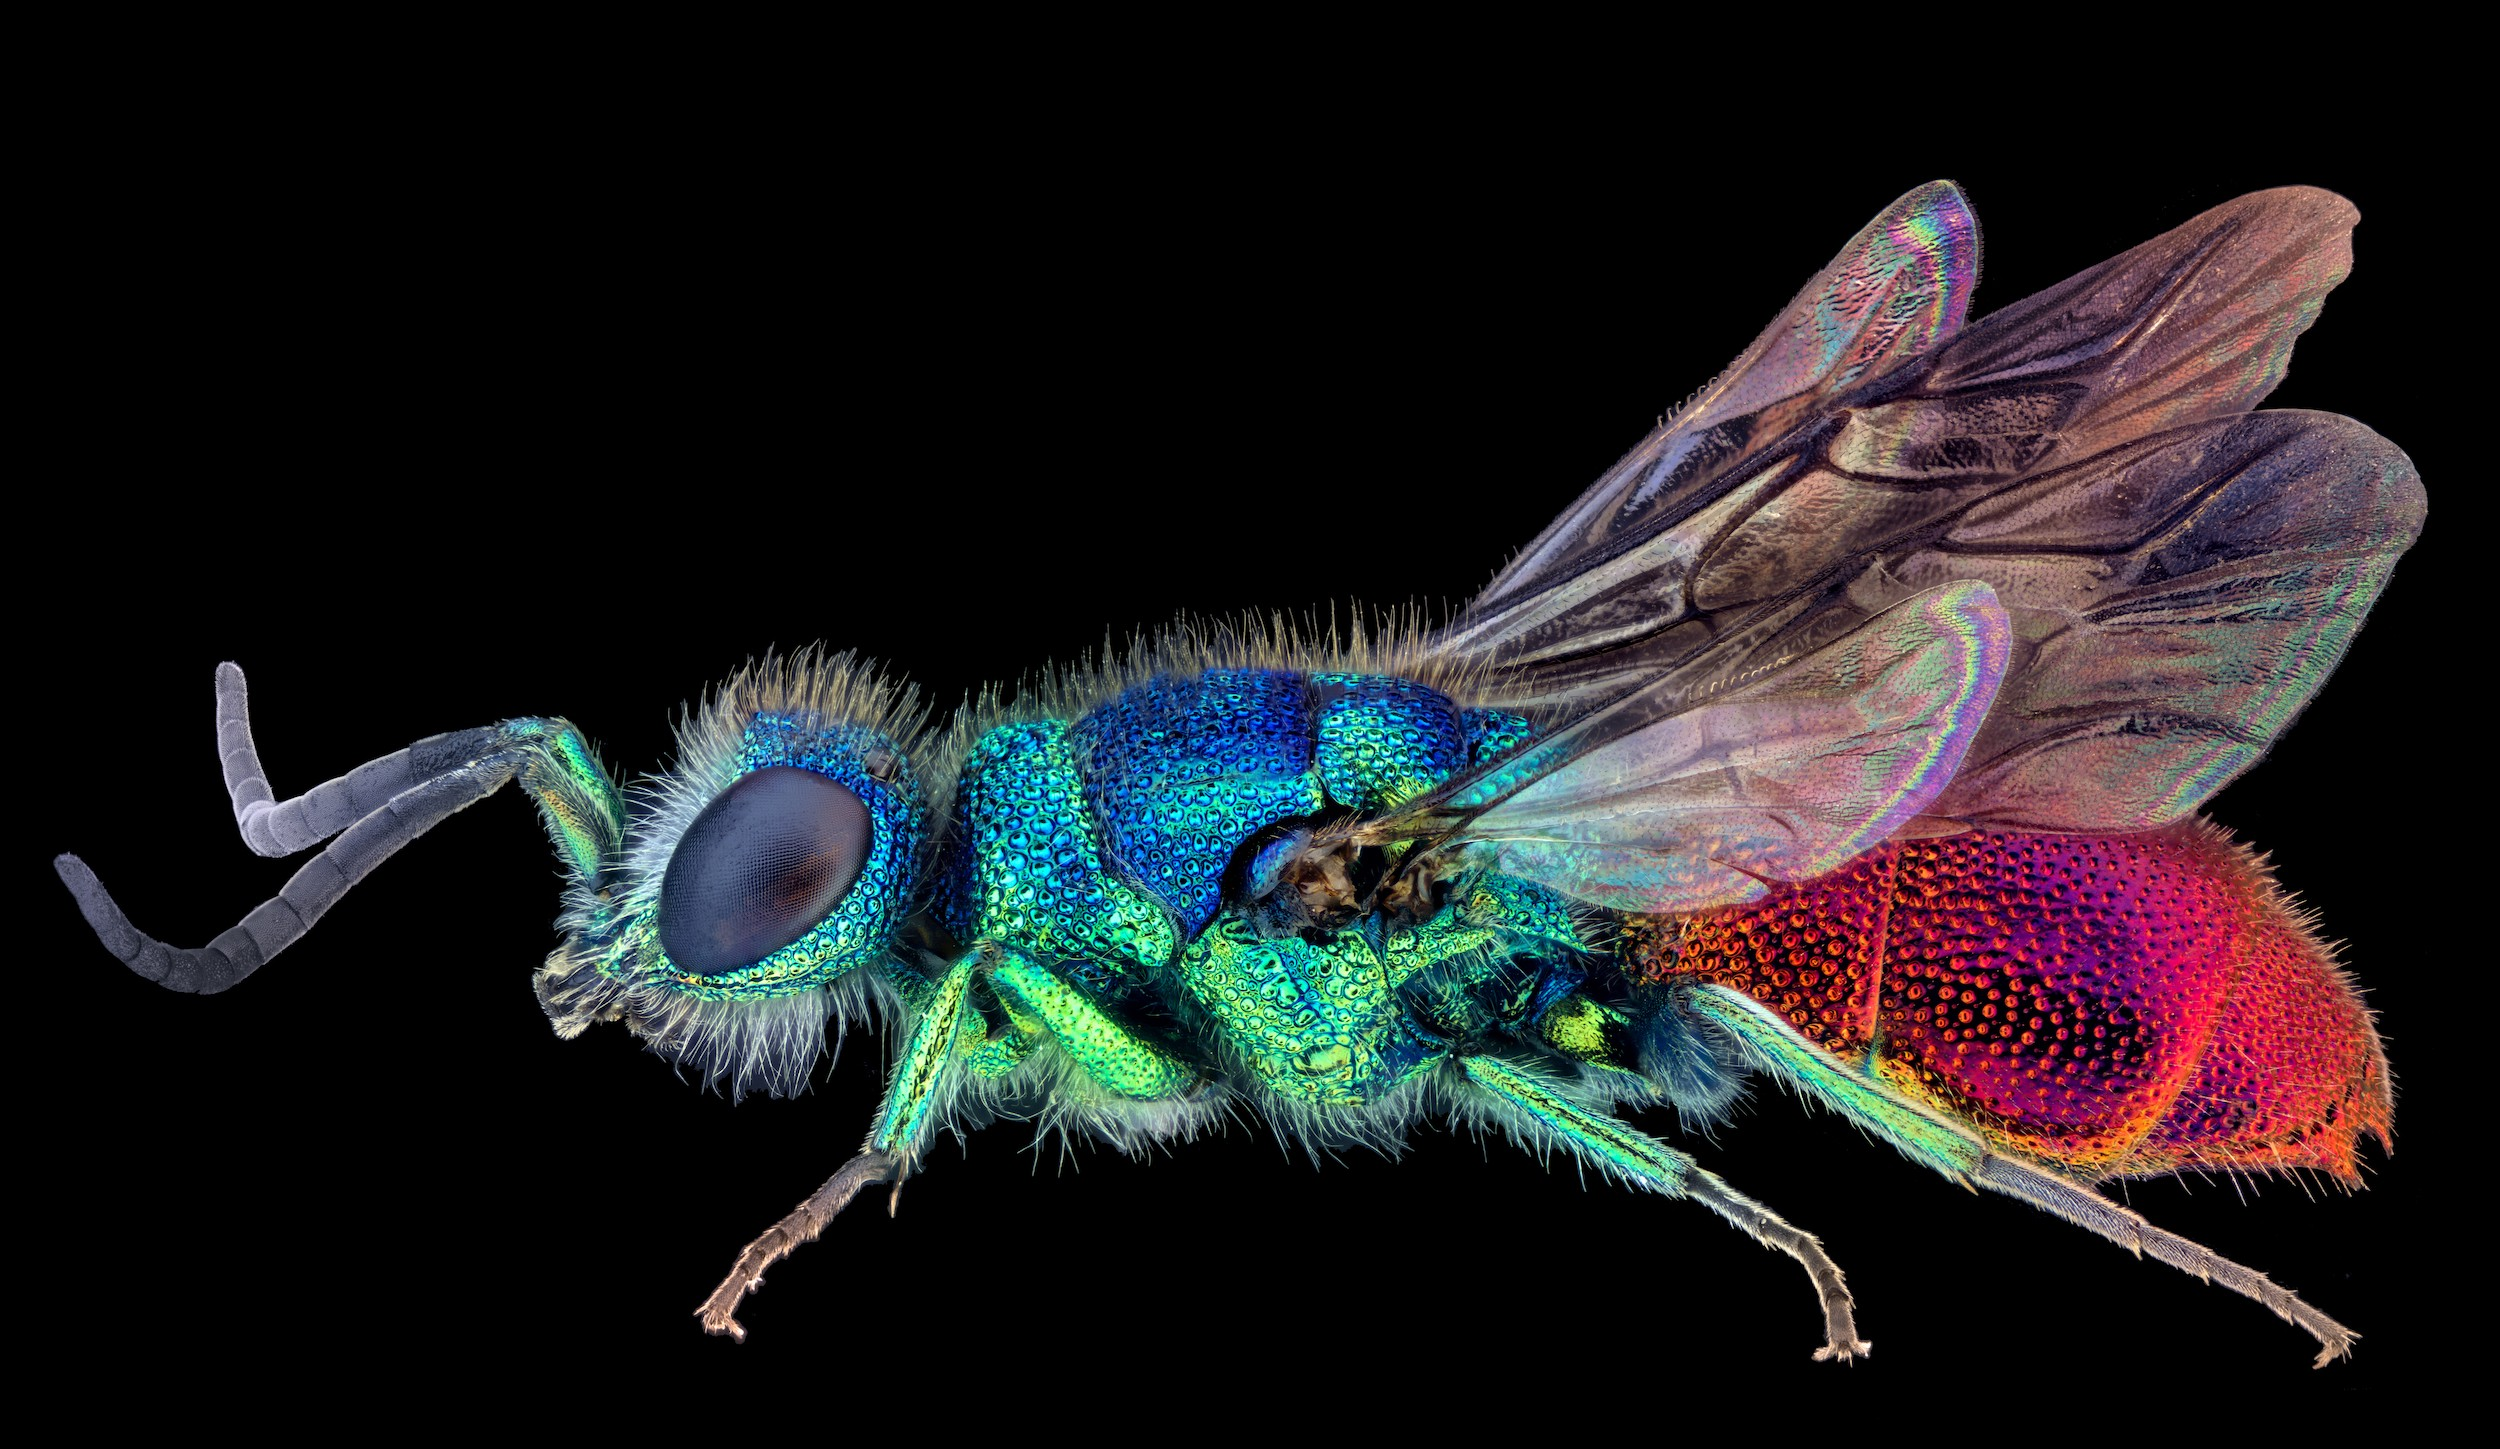 A very brightly colored fly-type bug includes shades of shiny, radiant blue, green, purple, and pink